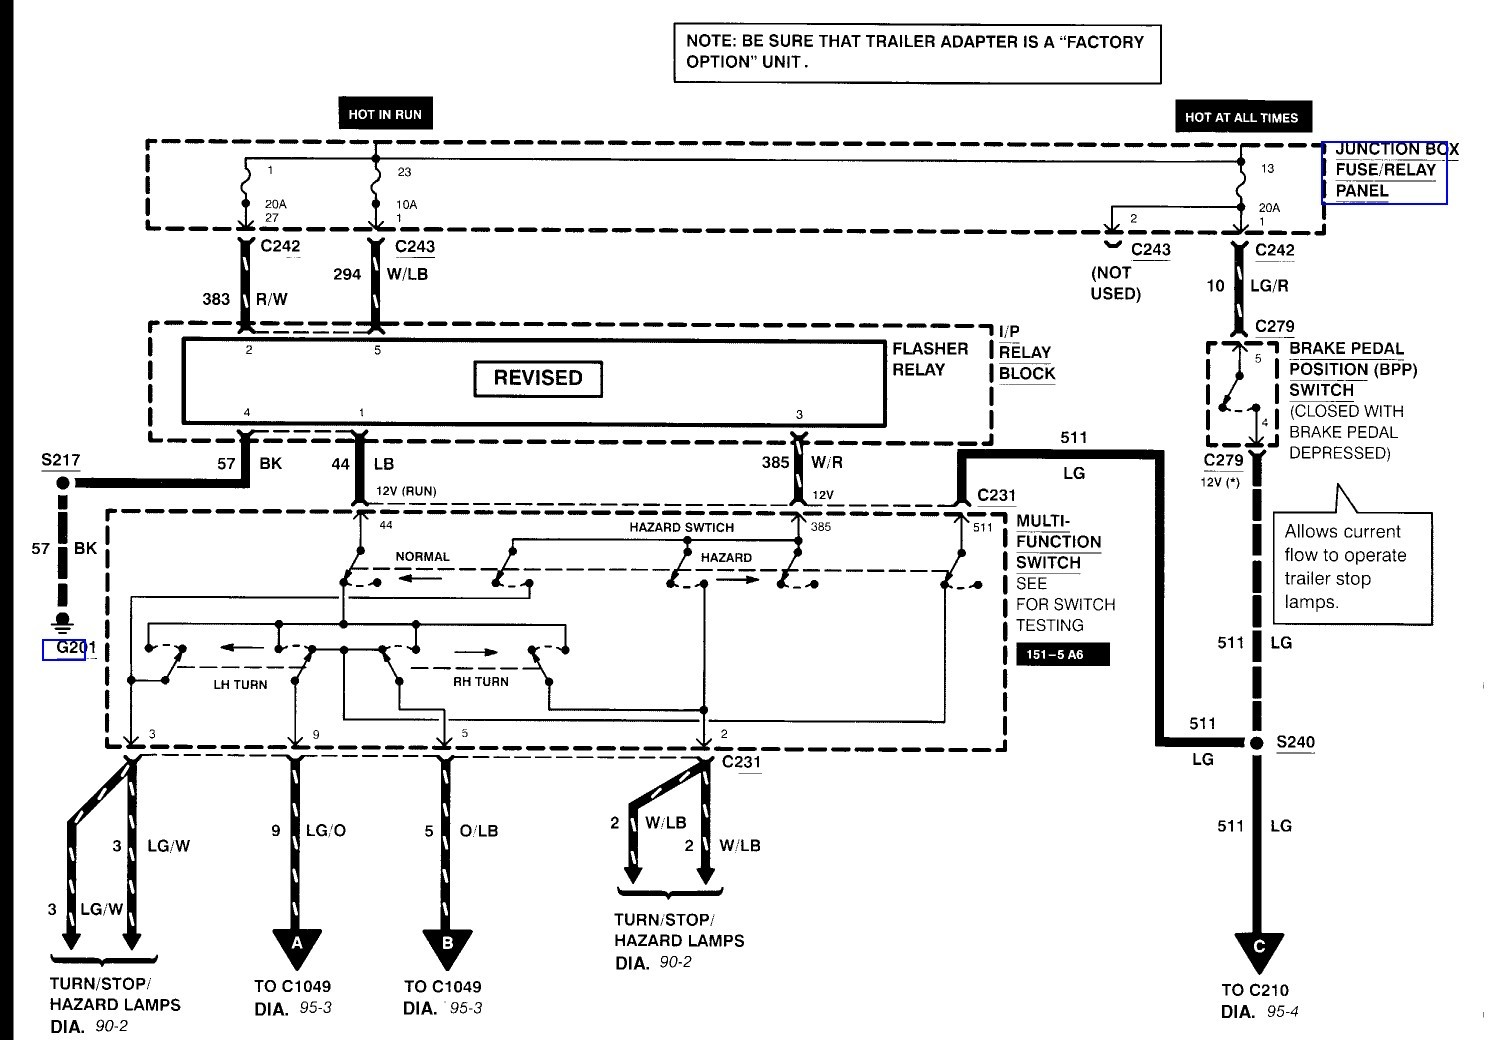 2000 ford f350 tail light wiring diagram inspirational 1999 ford f 250 wiring diagram schematics wiring diagrams e280a2 of 2000 ford f350 tail light wiring diagram